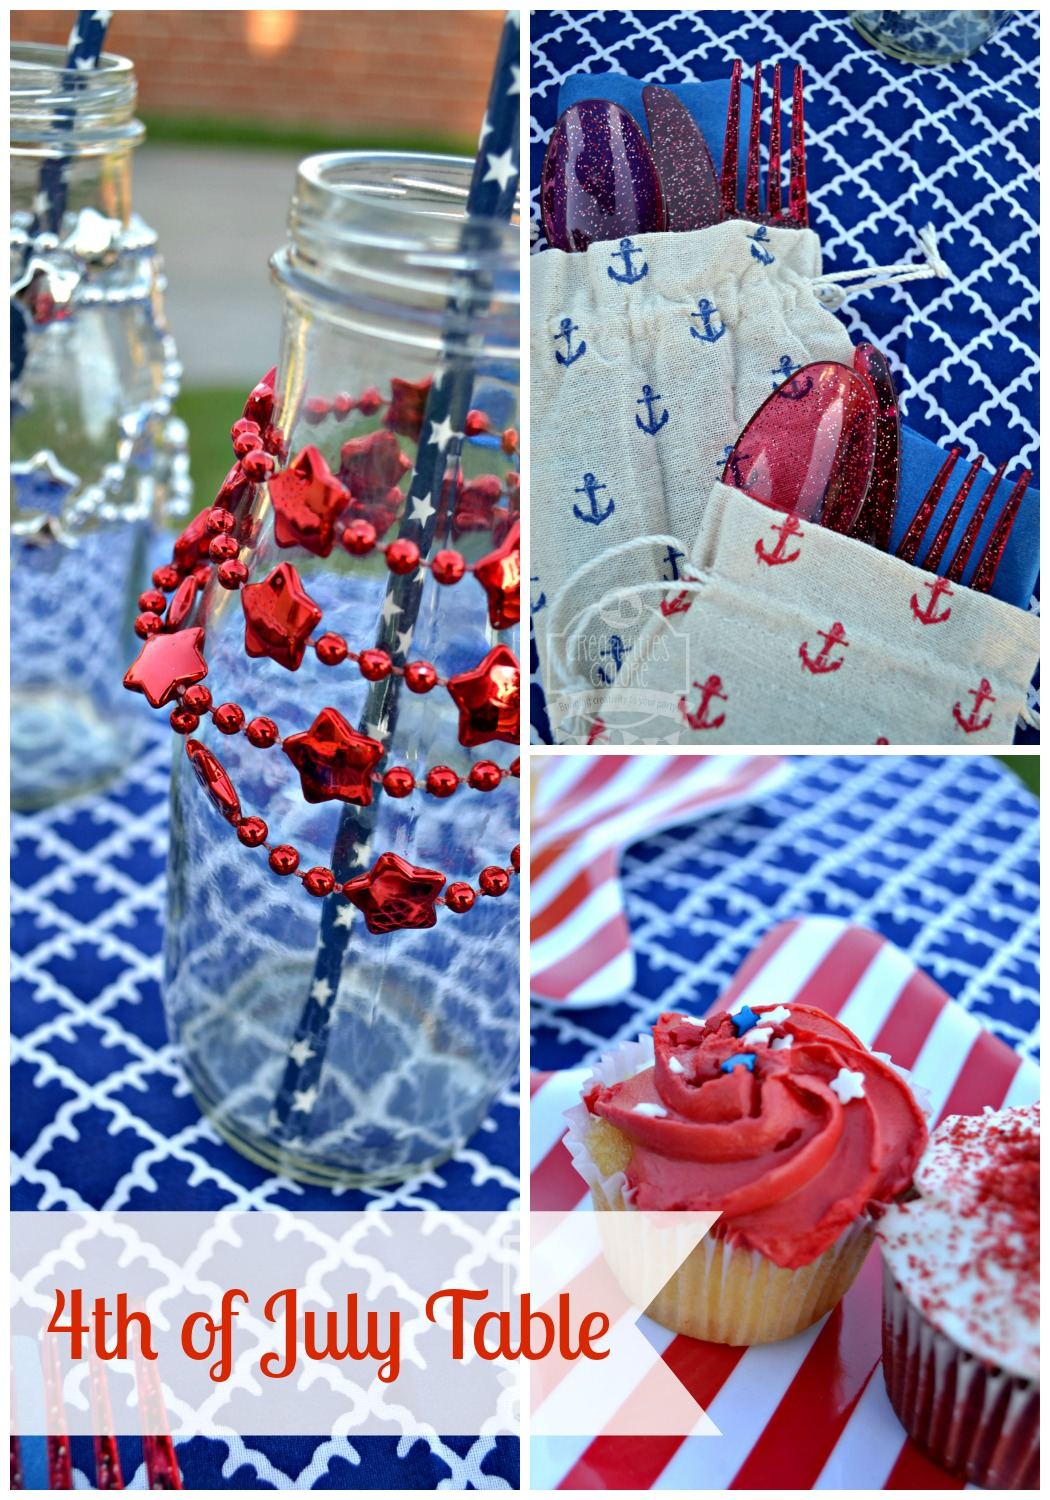 Are you looking for 4th of July theme ideas? If so, we are sharing some great ideas to help you plan your next 4th of July celebration!